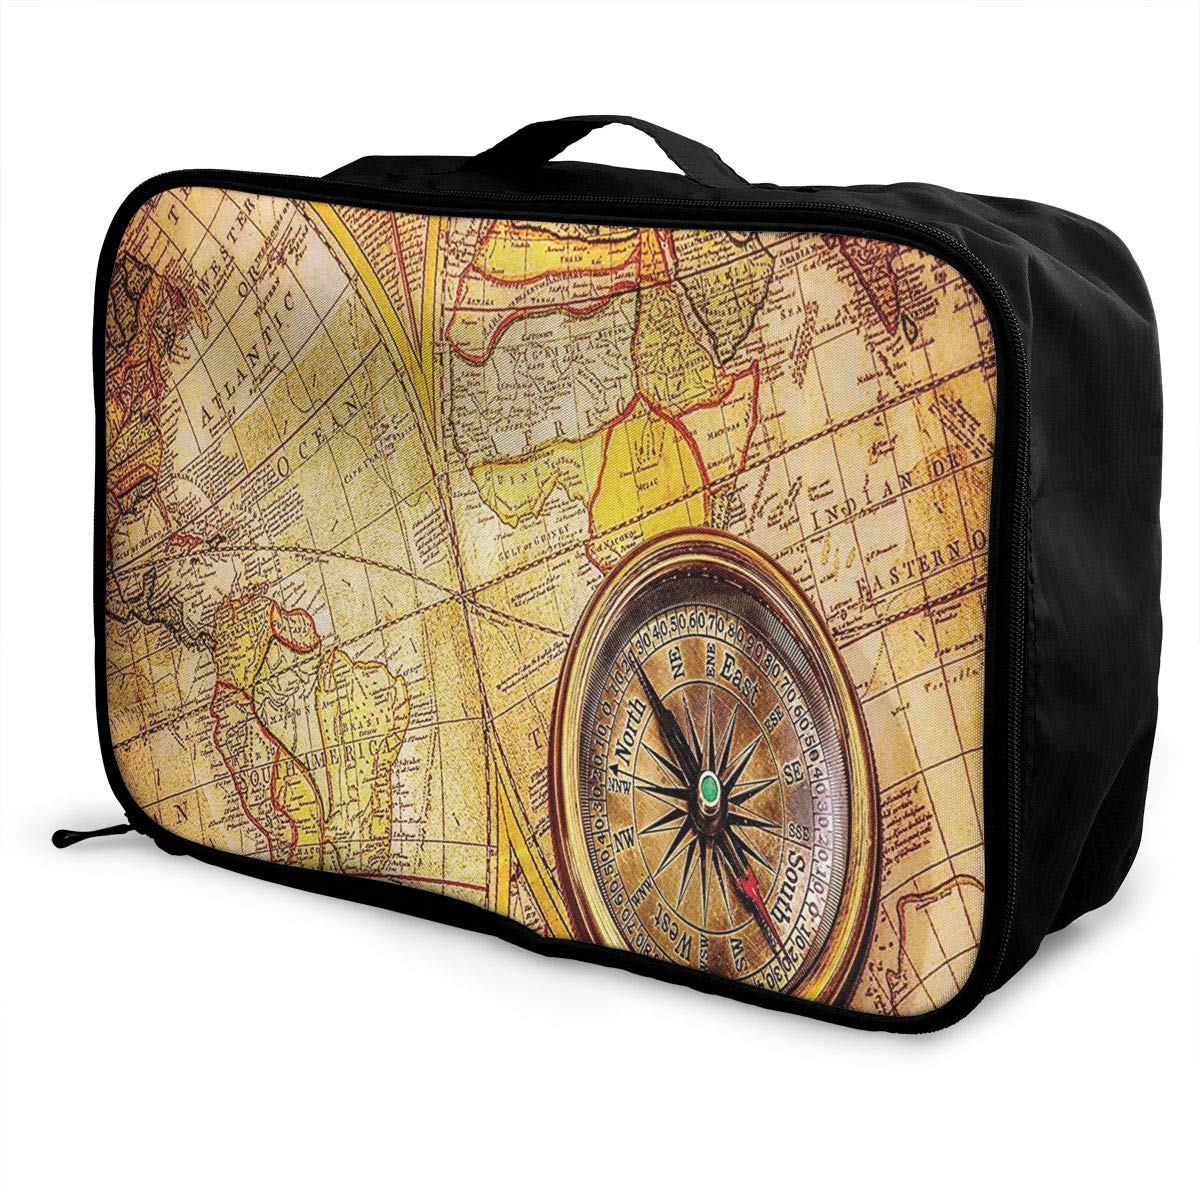 ADGAI Compass On an Ancient World Map Canvas Travel Weekender Bag,Fashion Custom Lightweight Large Capacity Portable Luggage Bag,Suitcase Trolley Bag